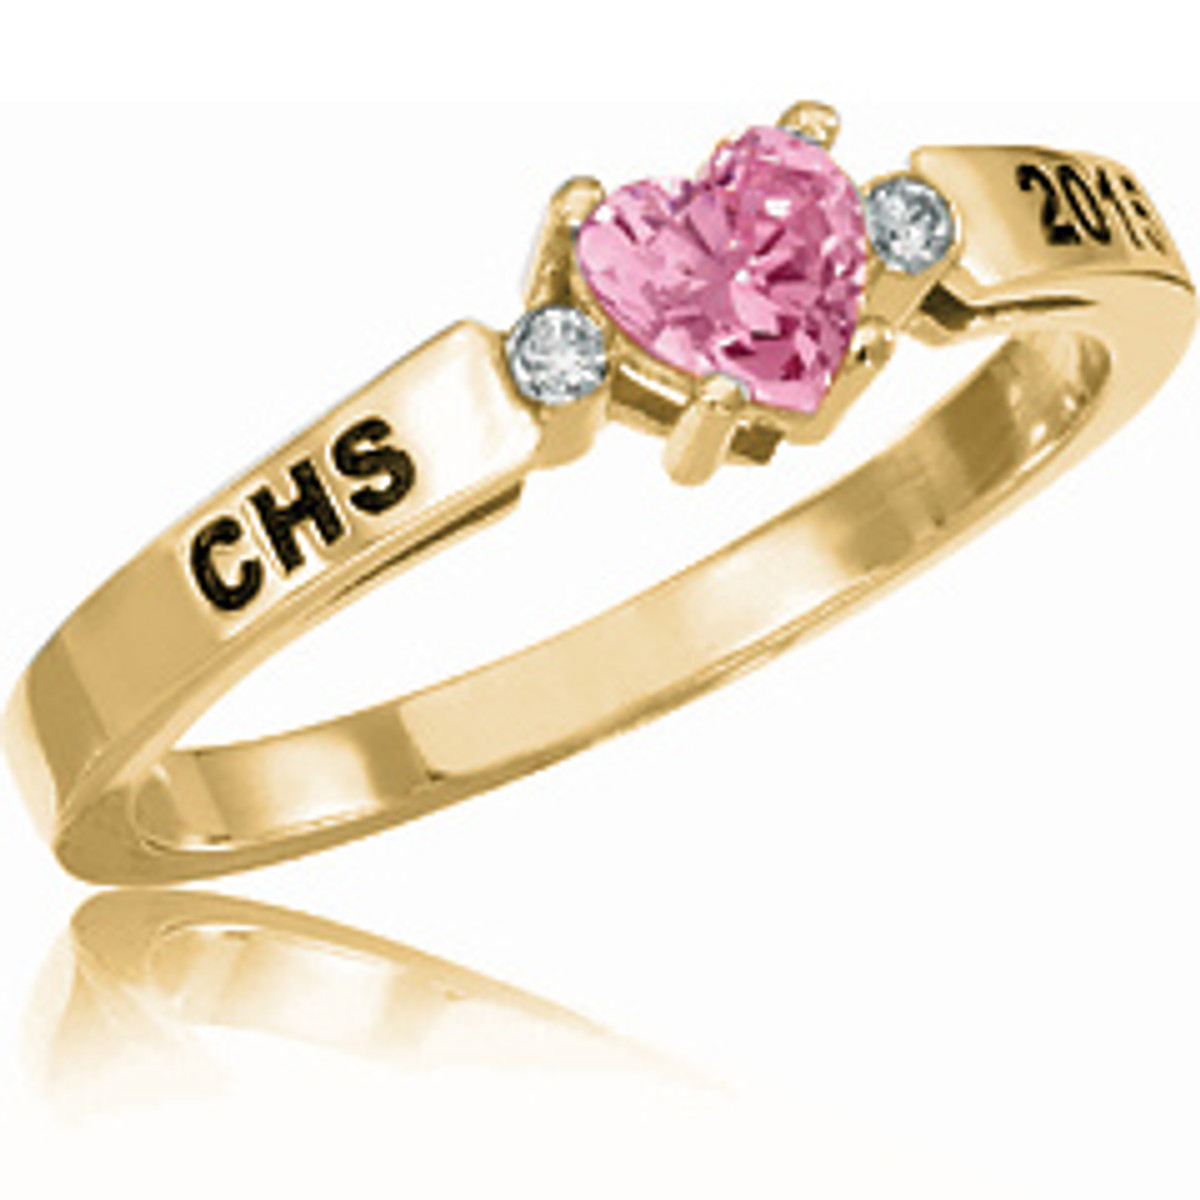 Ladies 10K Gold Beloved with Diamonds Class Ring